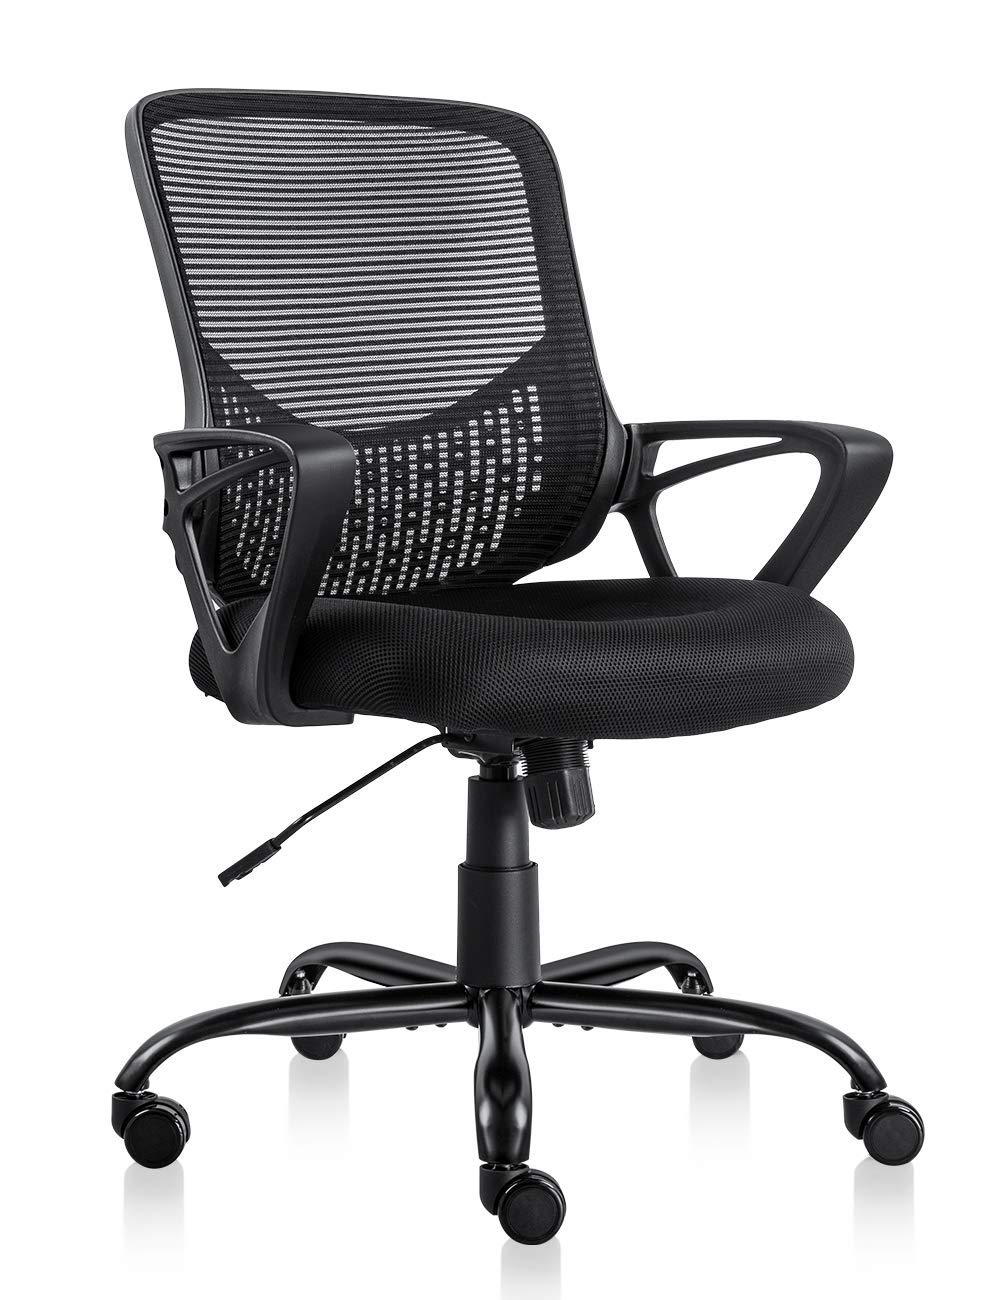 PTO Furniture Ergonomic Office Chair Lumbar Support Mesh Chair Computer Desk Task Chair with Armrests, Black